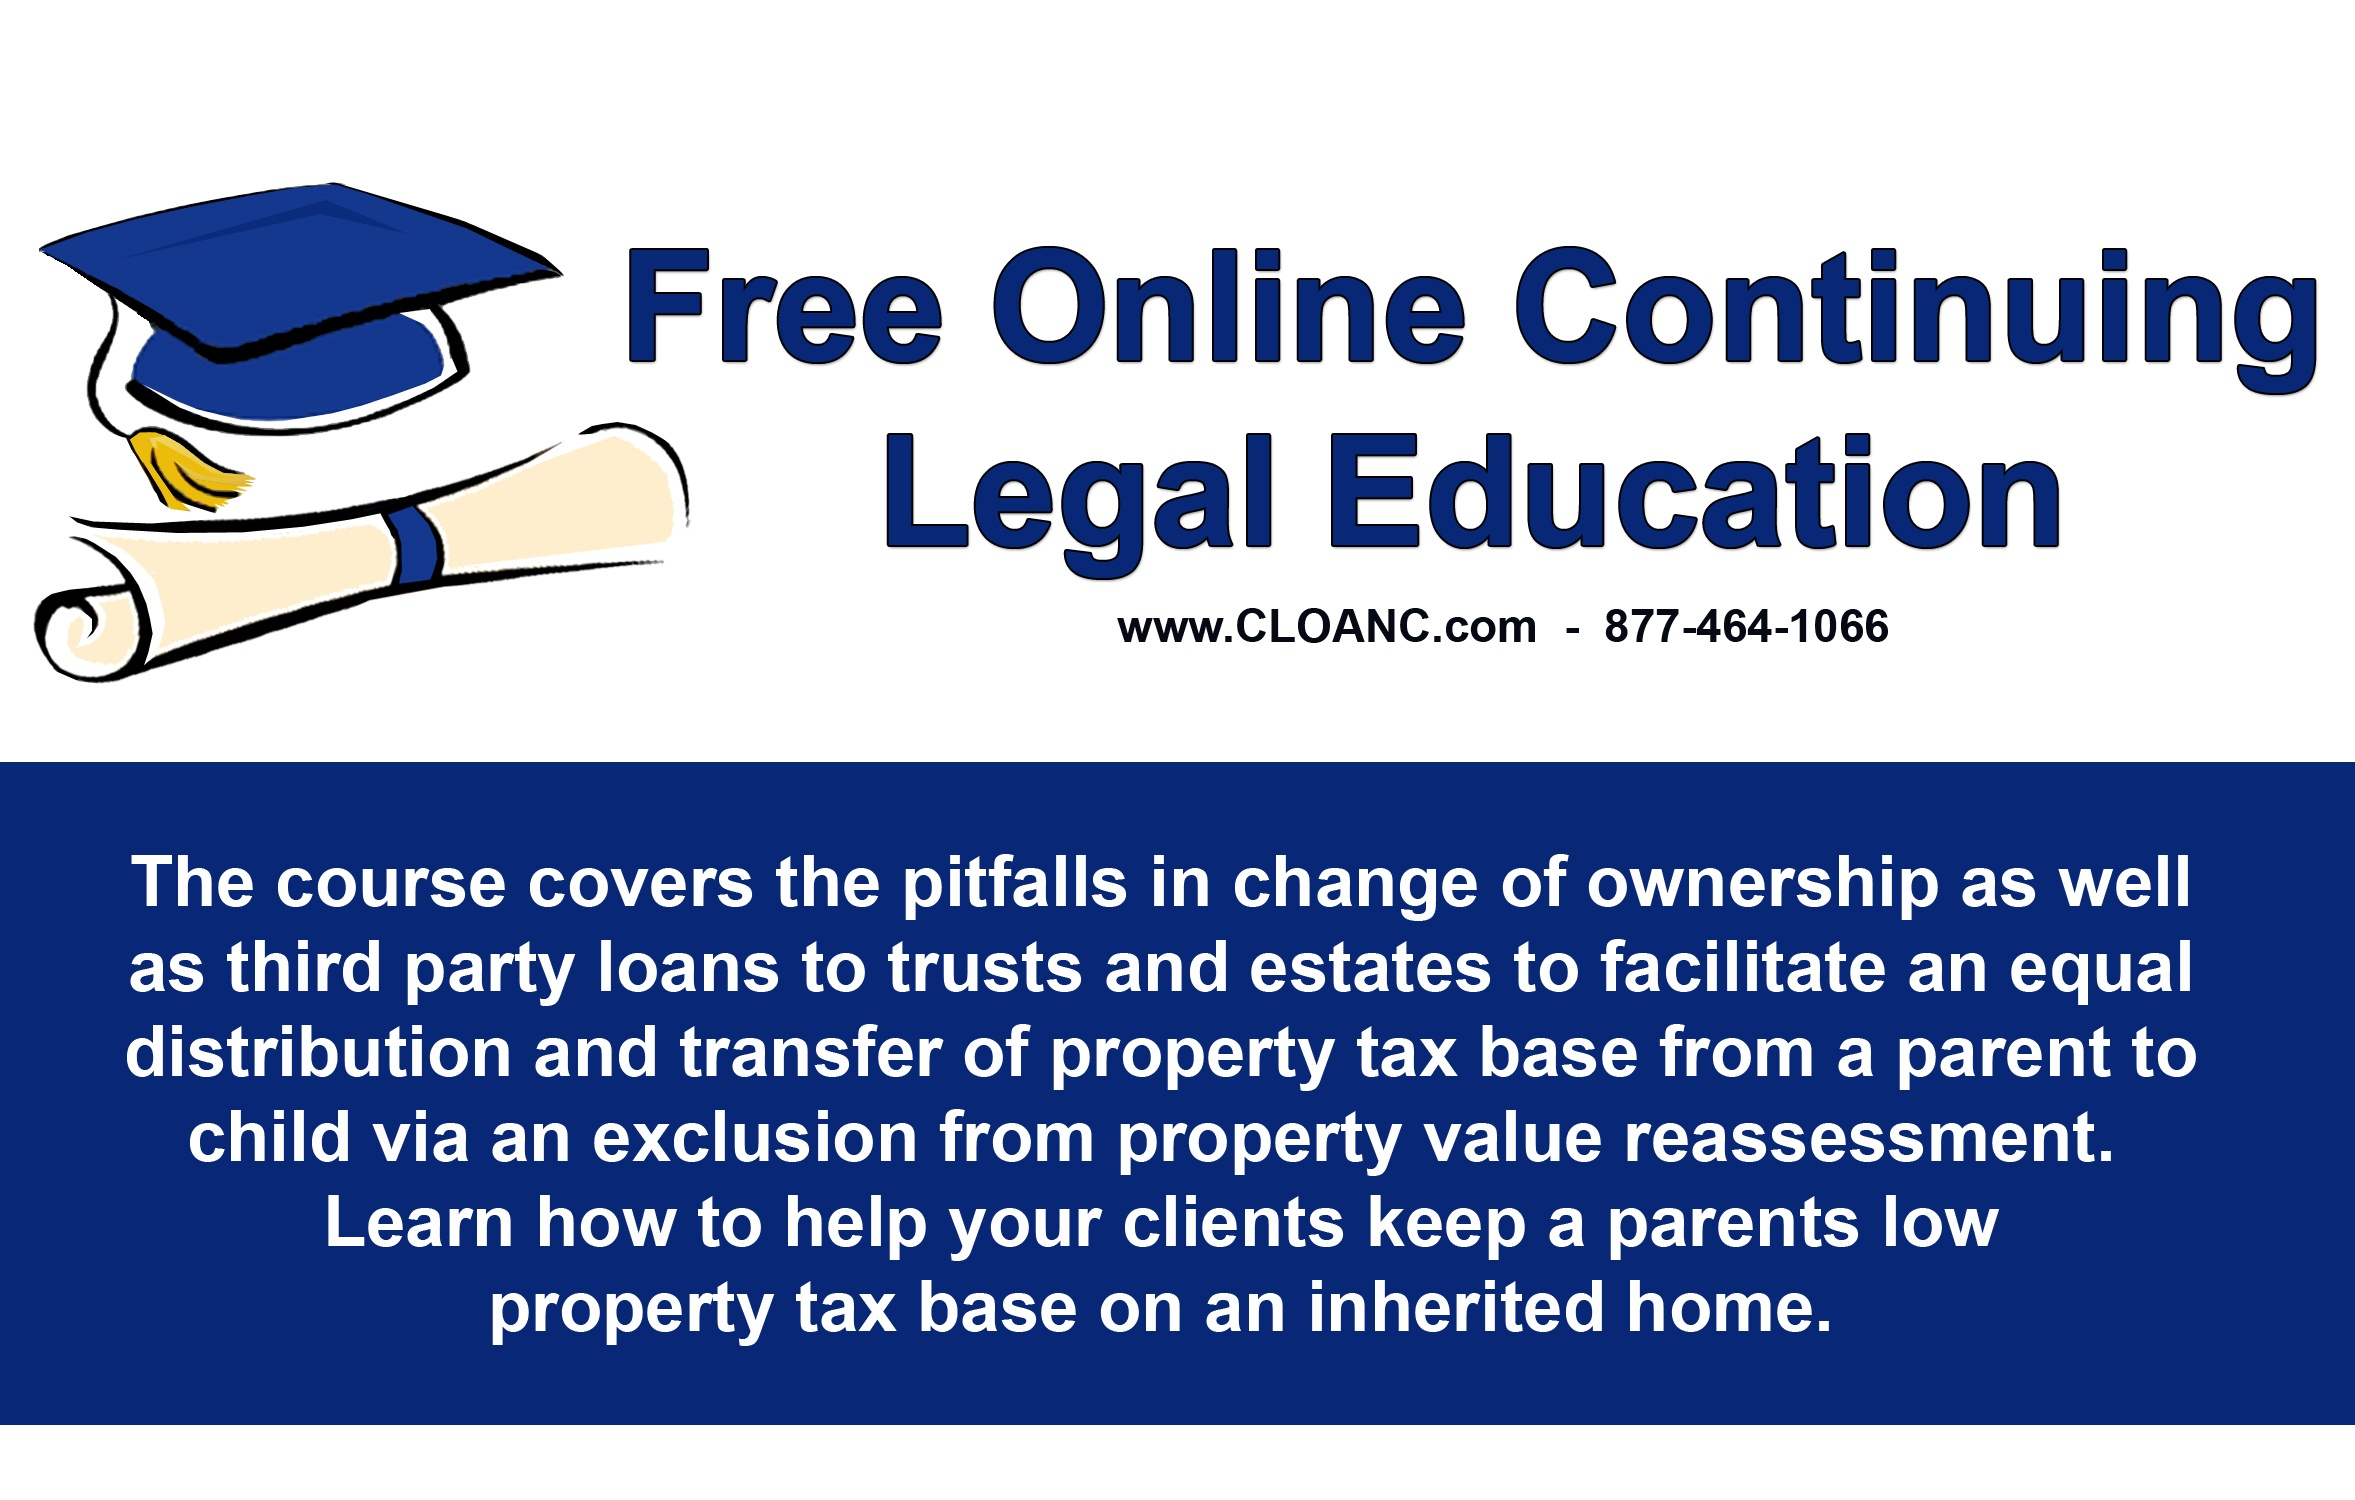 Free Online Continuing Legal Education